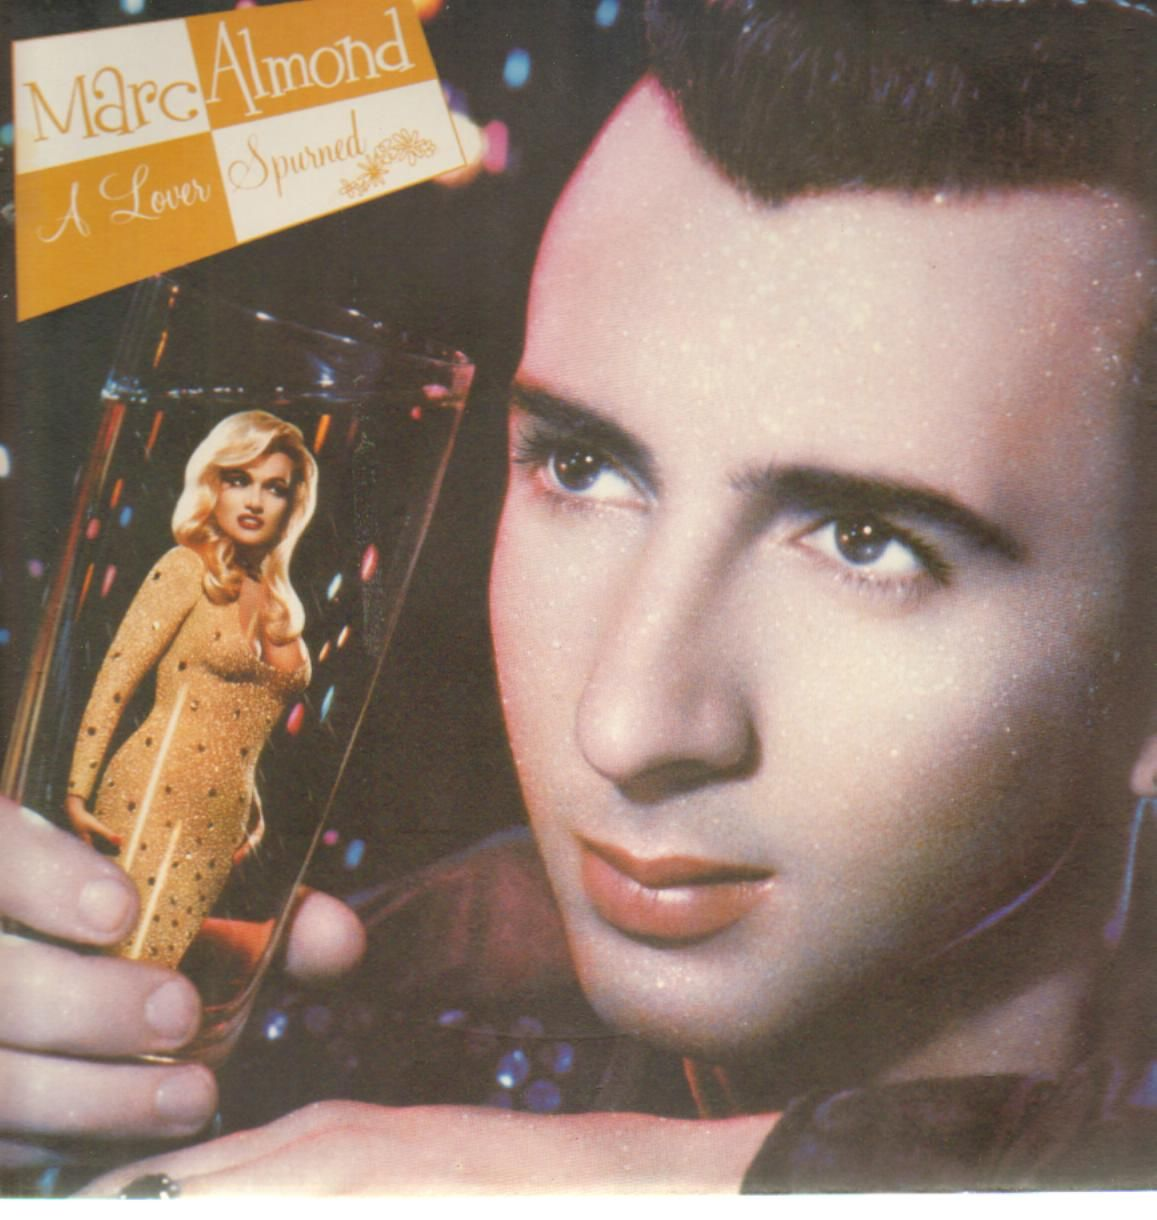 Trials of Eyeliner The Anthology 19792016  Marc Almond